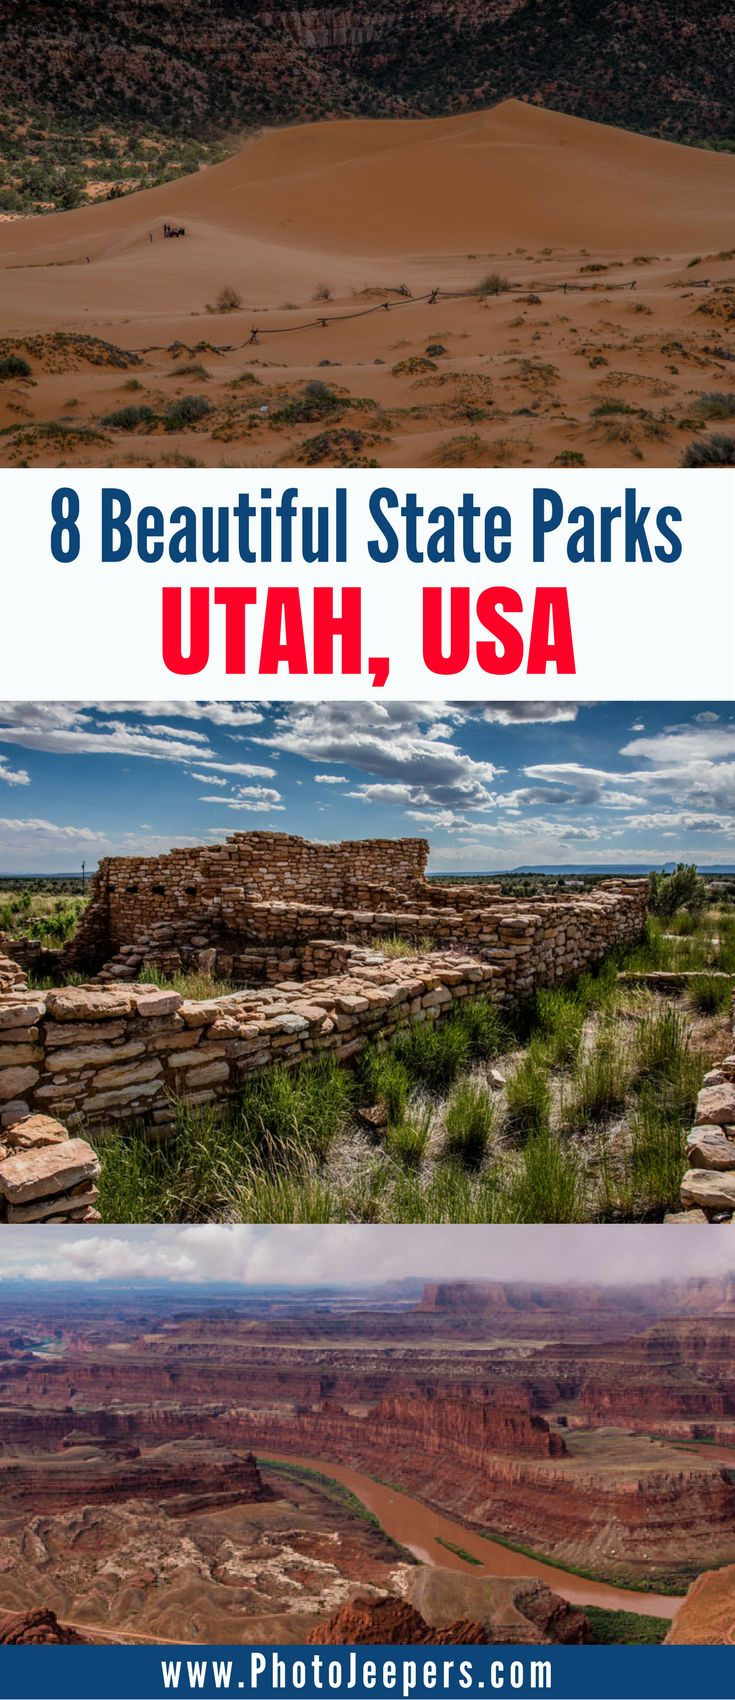 Utah has many beautiful state parks to explore. If you're looking for outdoor things to do in Utah, you'll want to check these state parks out. They're perfect for hiking in Utah, taking pictures, and seeing the diverse landscapes Utah has to offer. Make sure you save these Utah state parks to your Utah travel board so you can find them later.